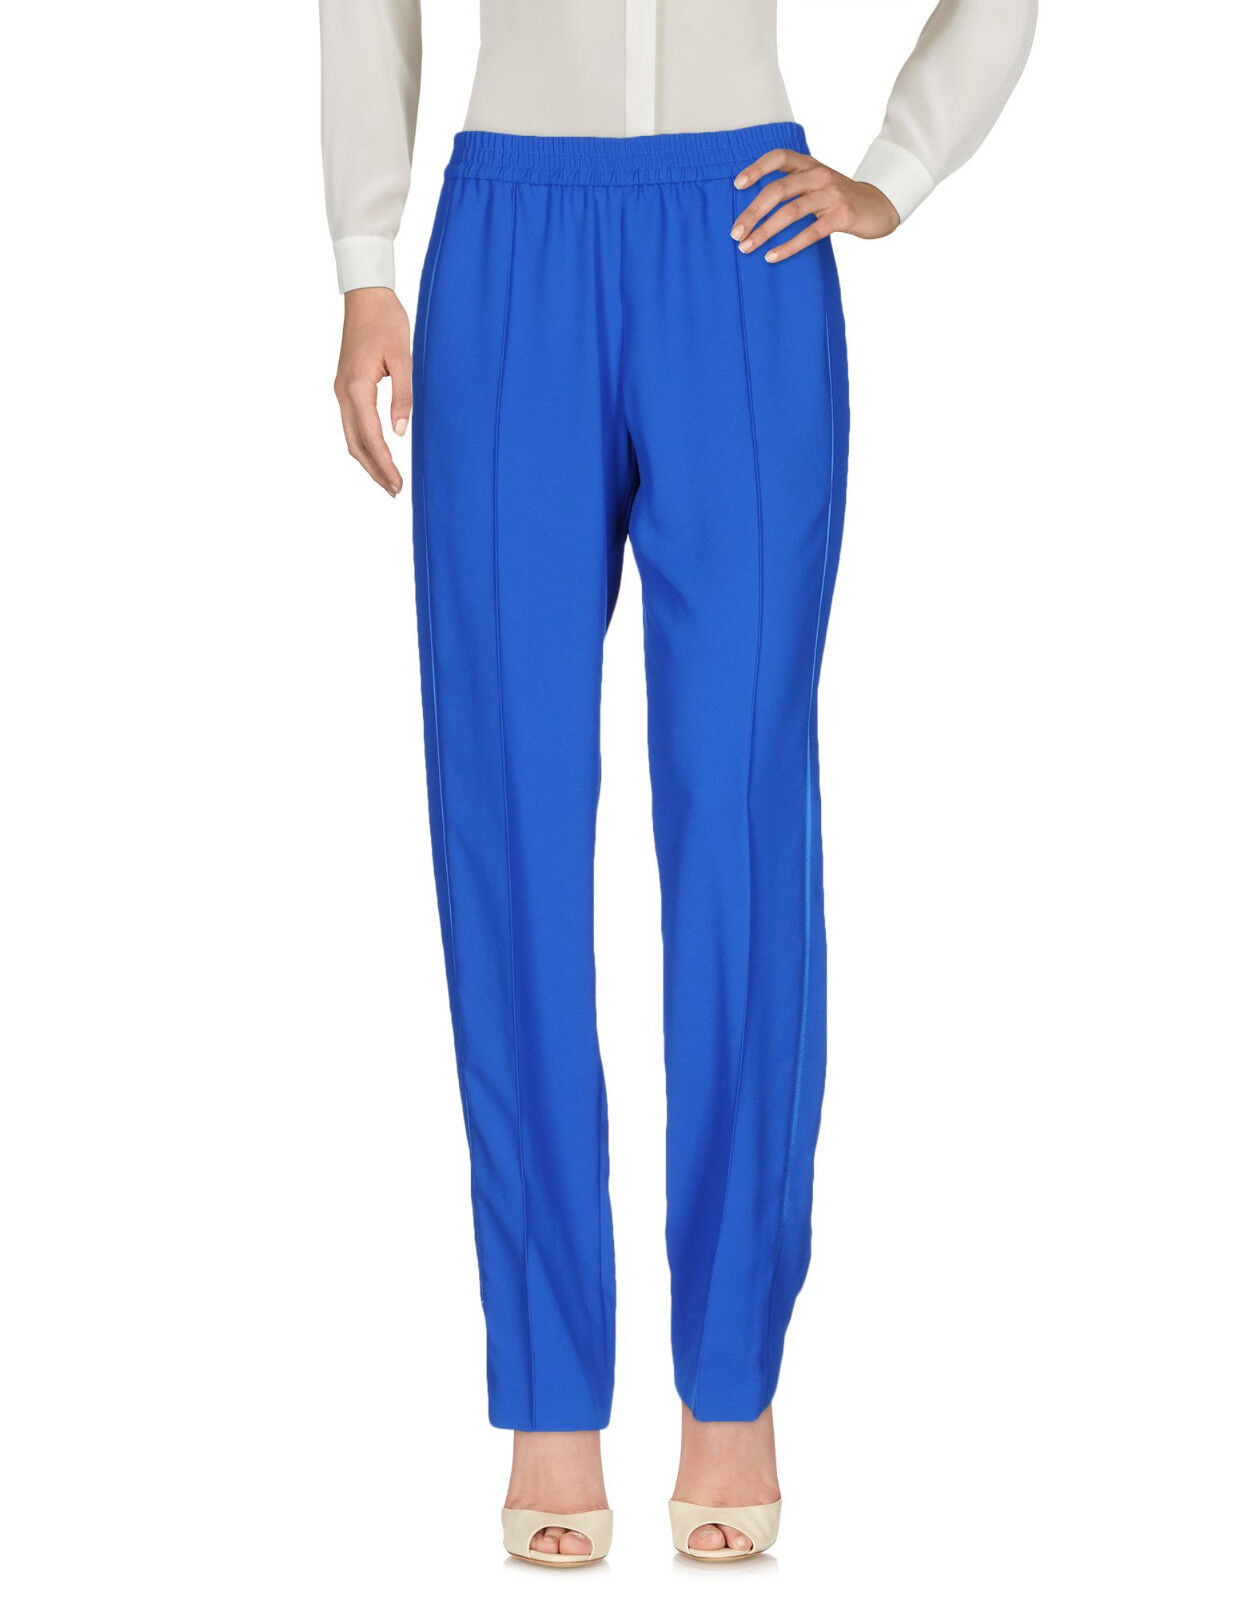 500 NWT 36 38 S KENZO Casual trousers Bright bluee women pants suit work